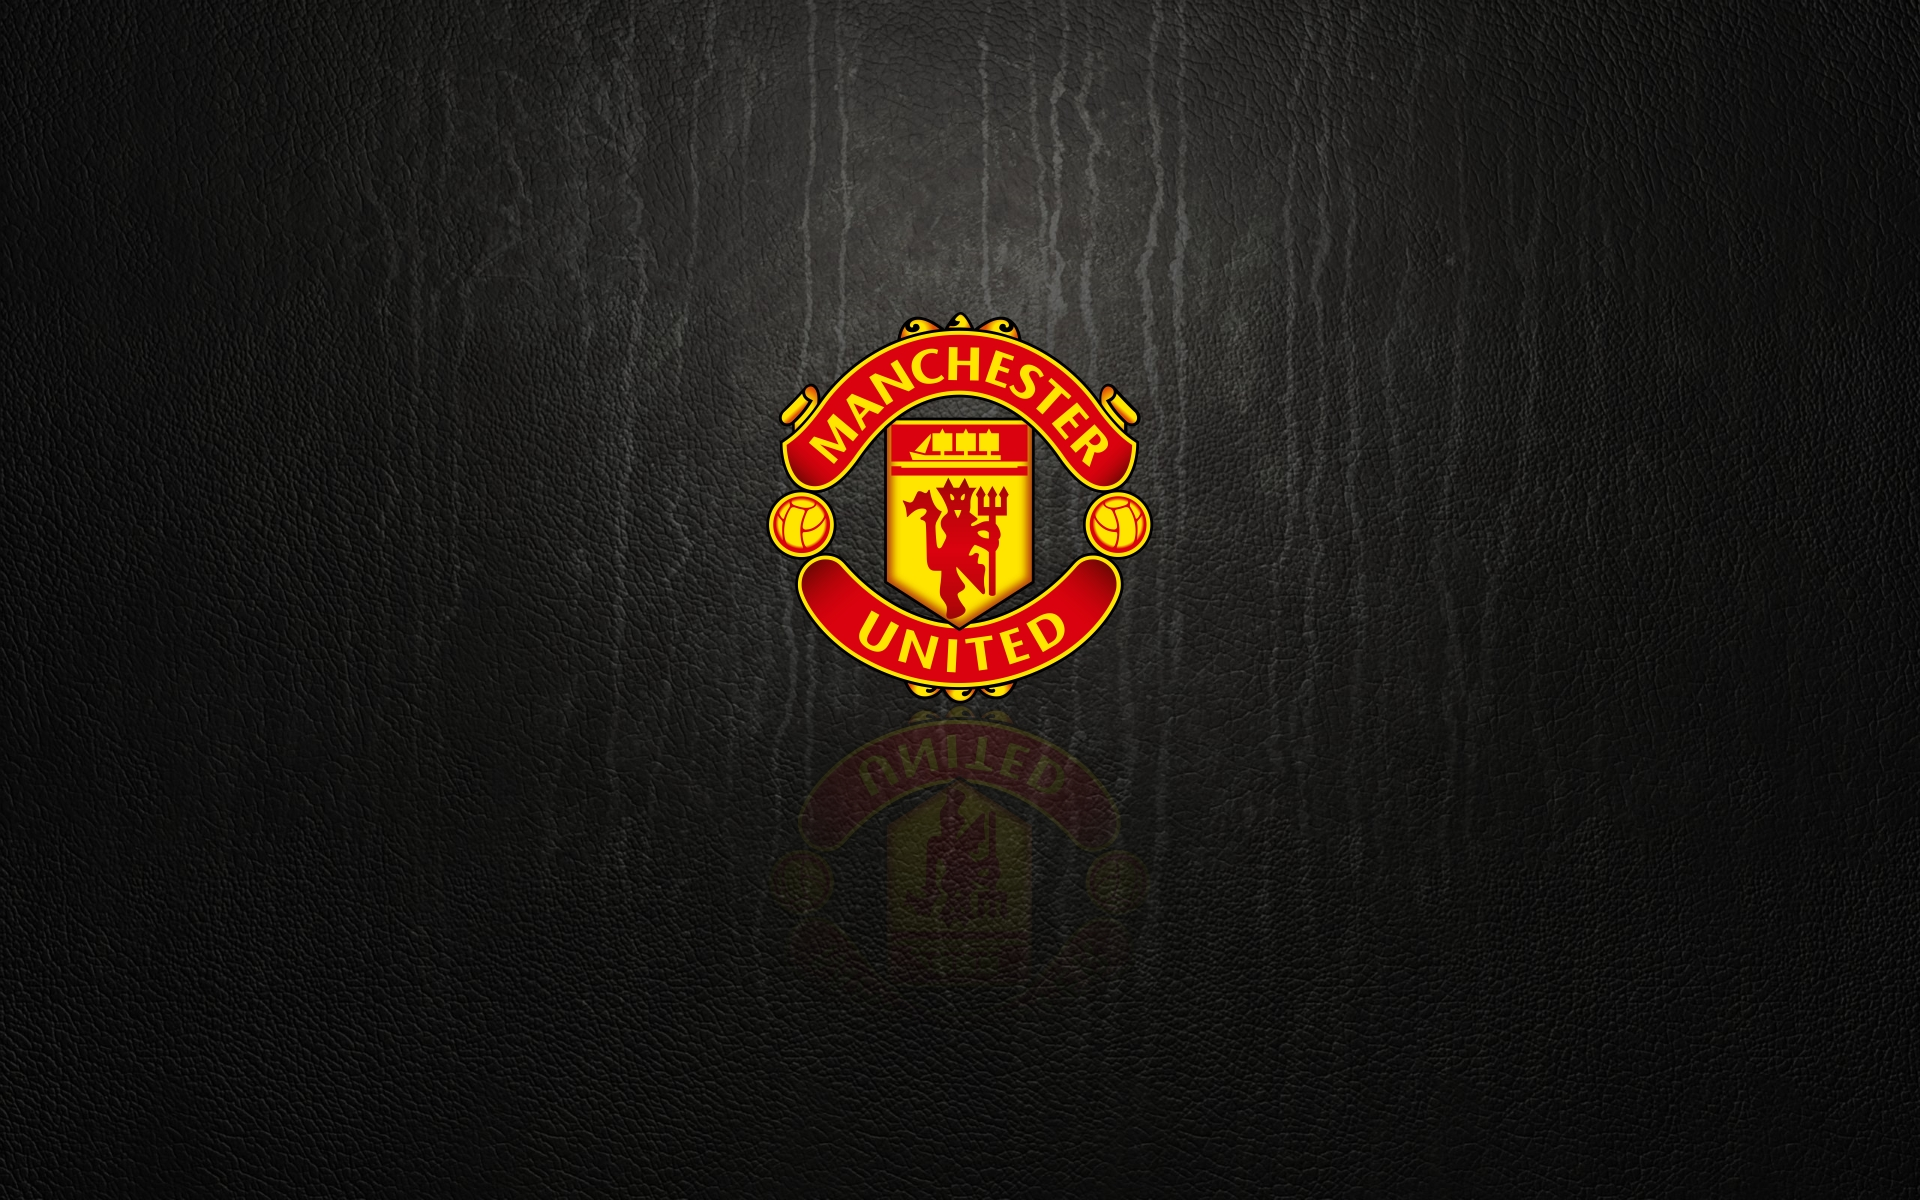 Manchester United F C Hd Wallpaper Background Image 1920x1200